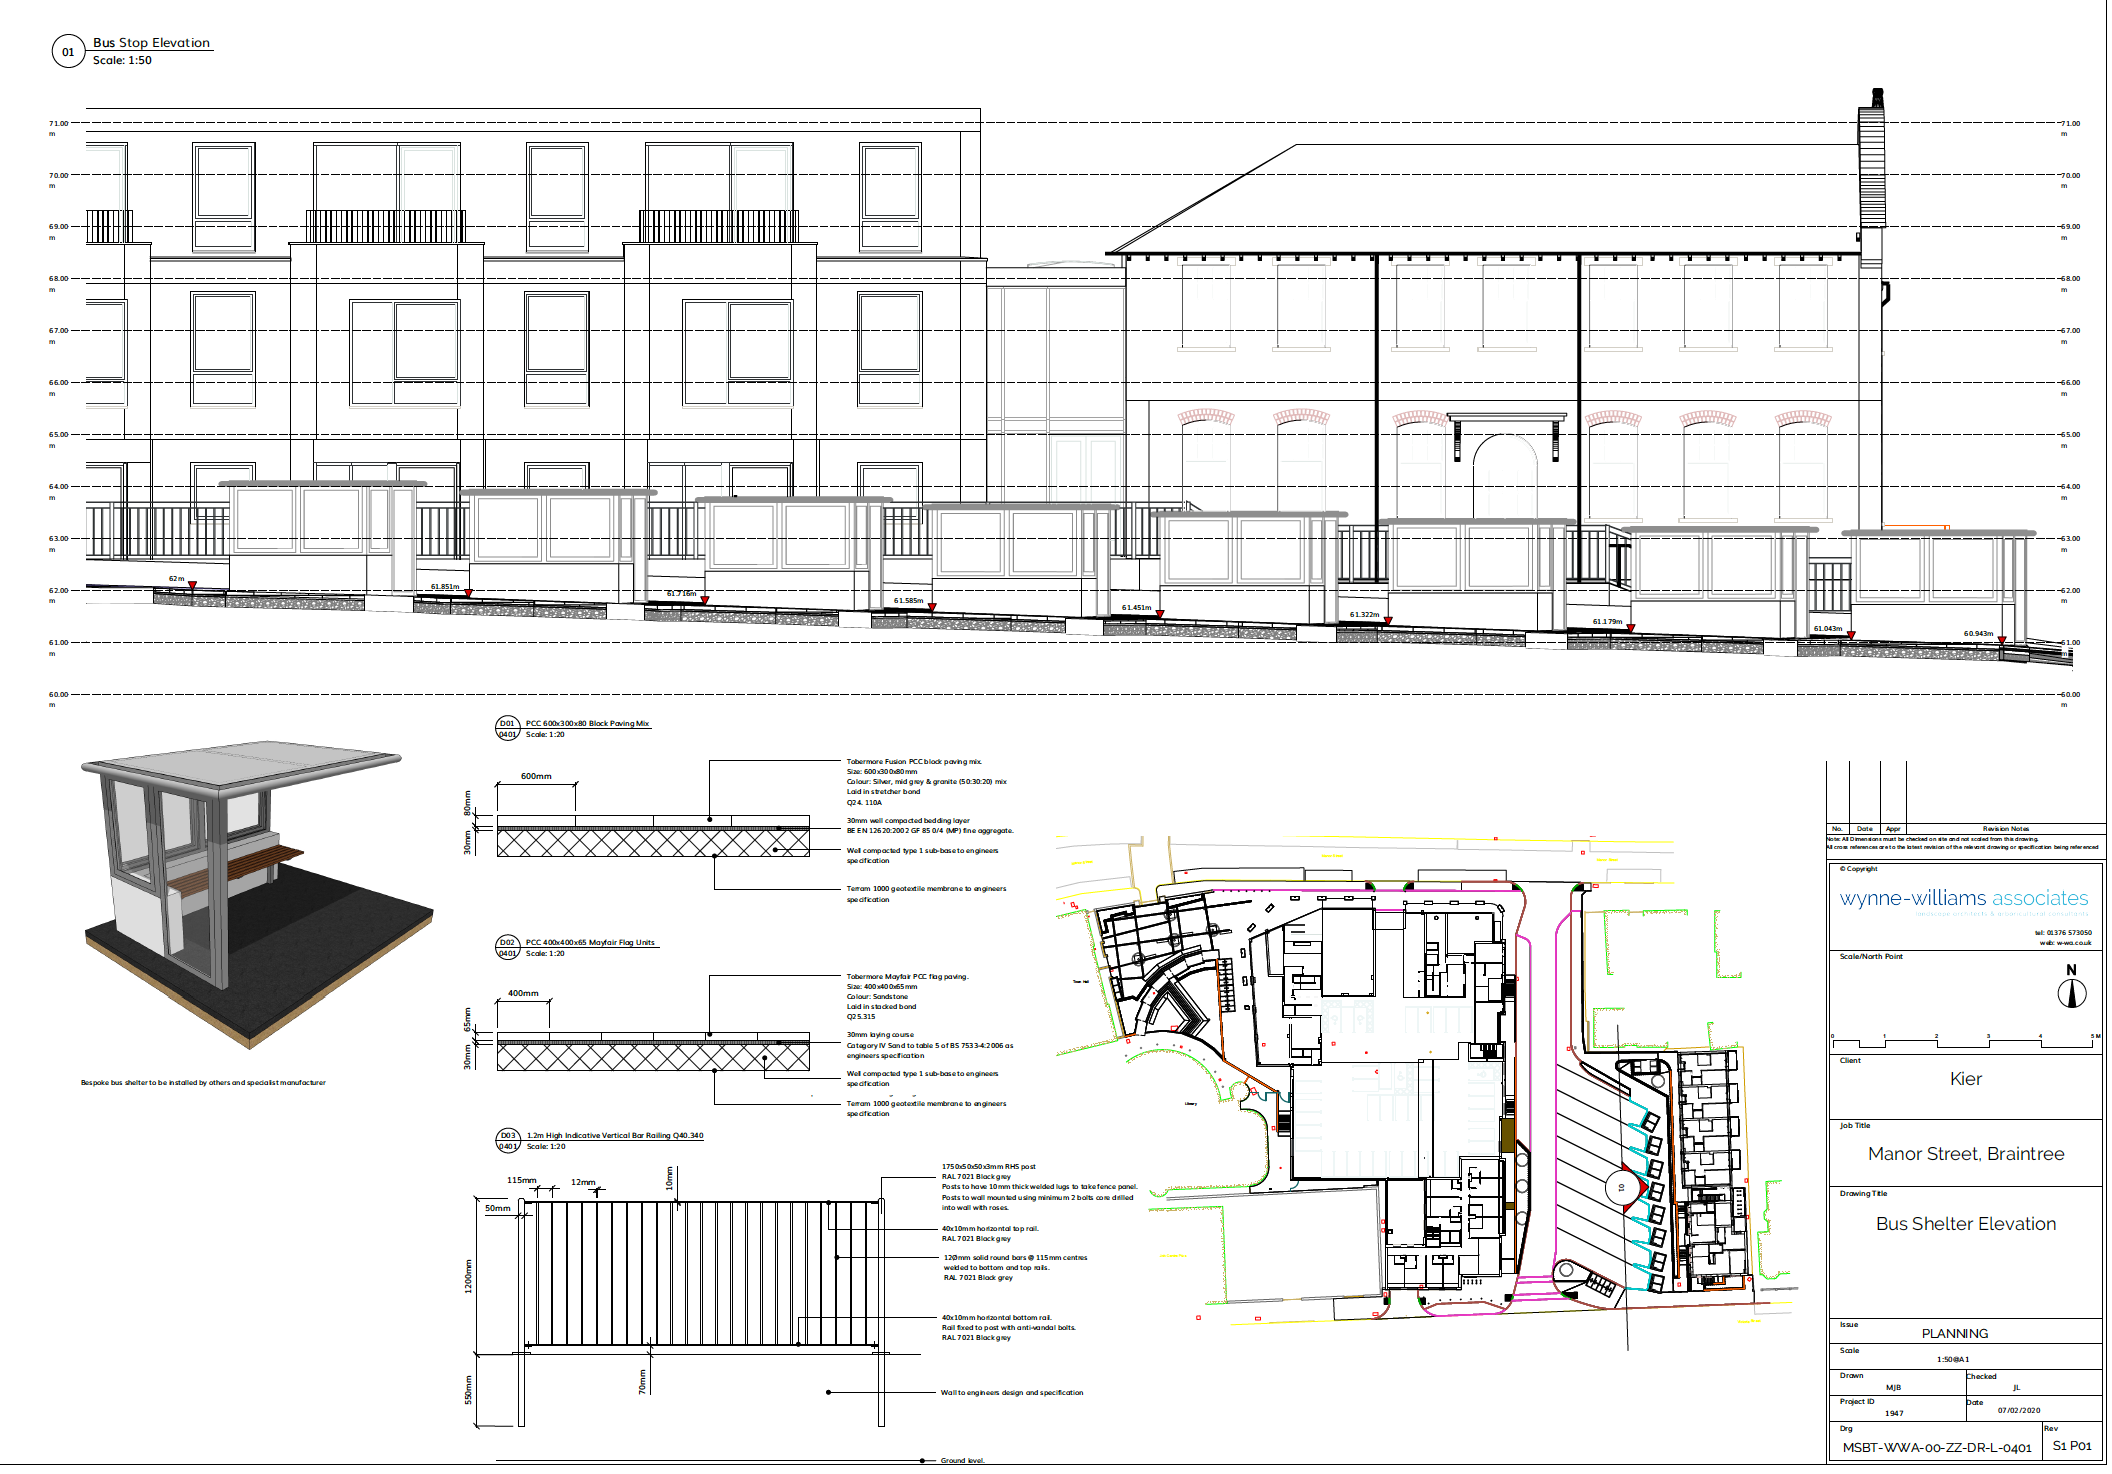 Elevation and detail sheet for the Manor Street project. Courtesy of Wynne-Williams Associates.